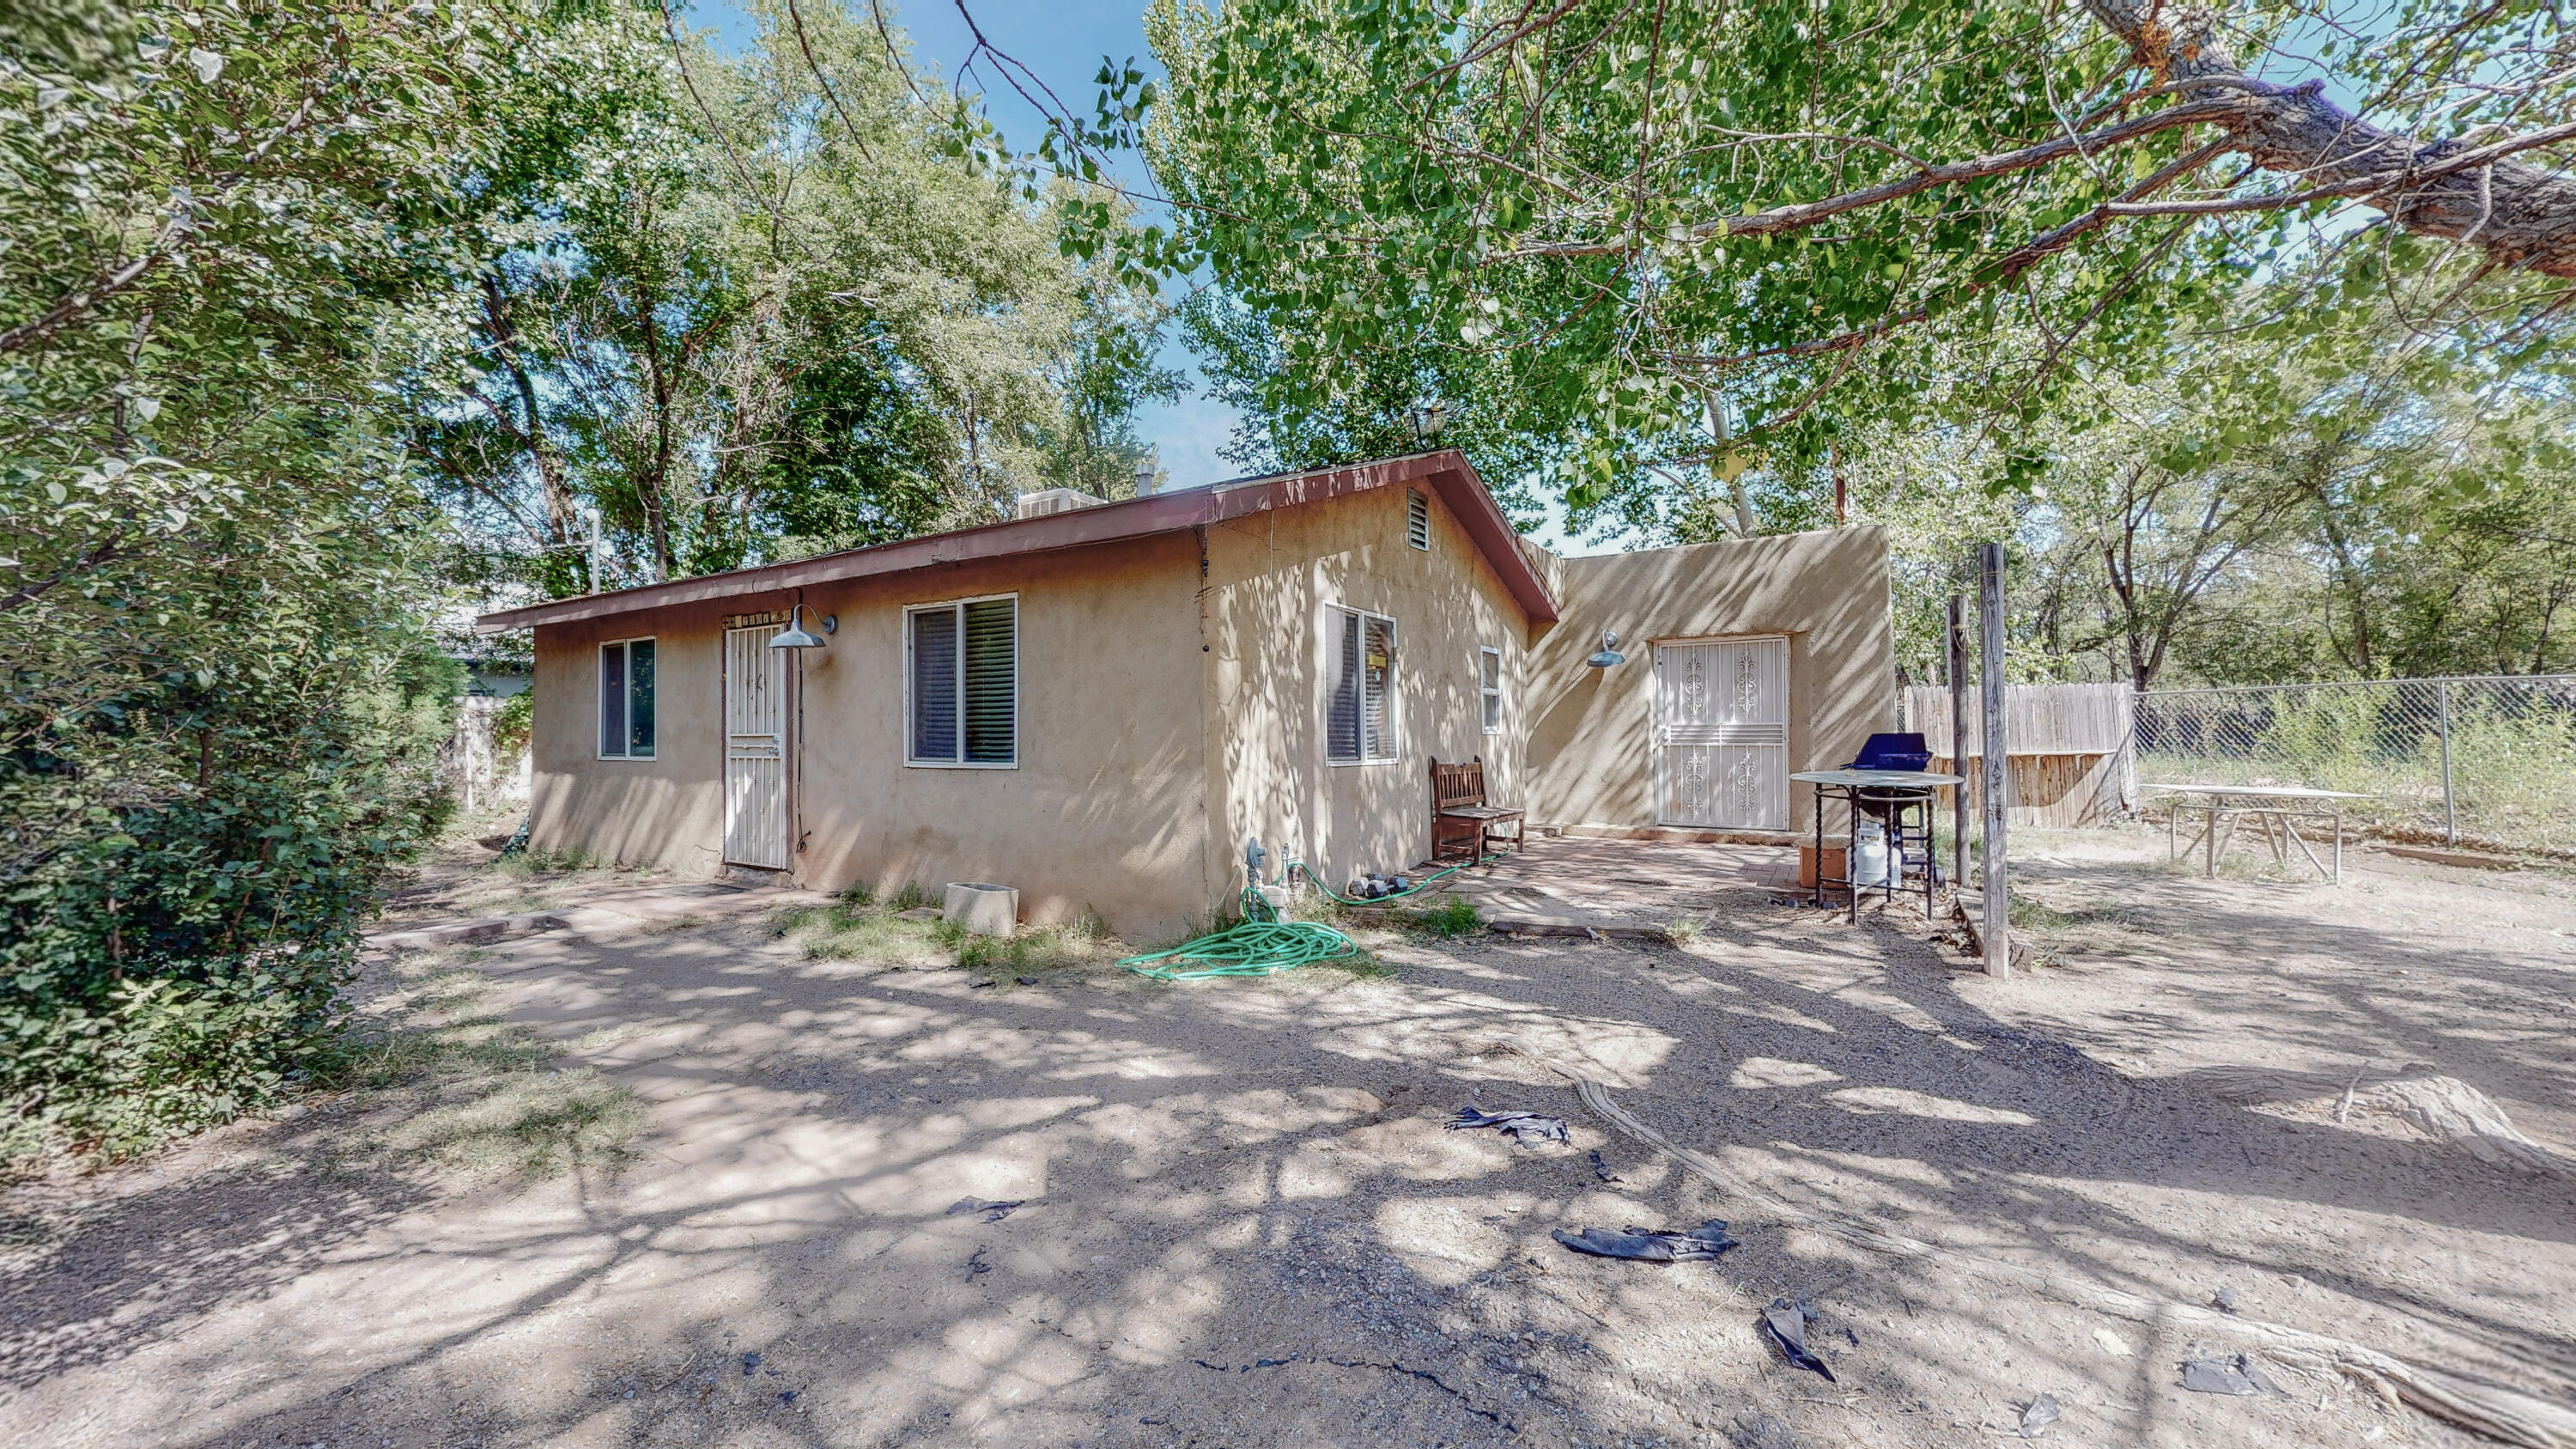 This home sits in a corner lot next to the ditch bank offering you comfort and privacy. It has a spacious yard with plenty of space for growth and trees to provide shade. The master bedroom features a large space, brick floors, and french doors. Come take a look!